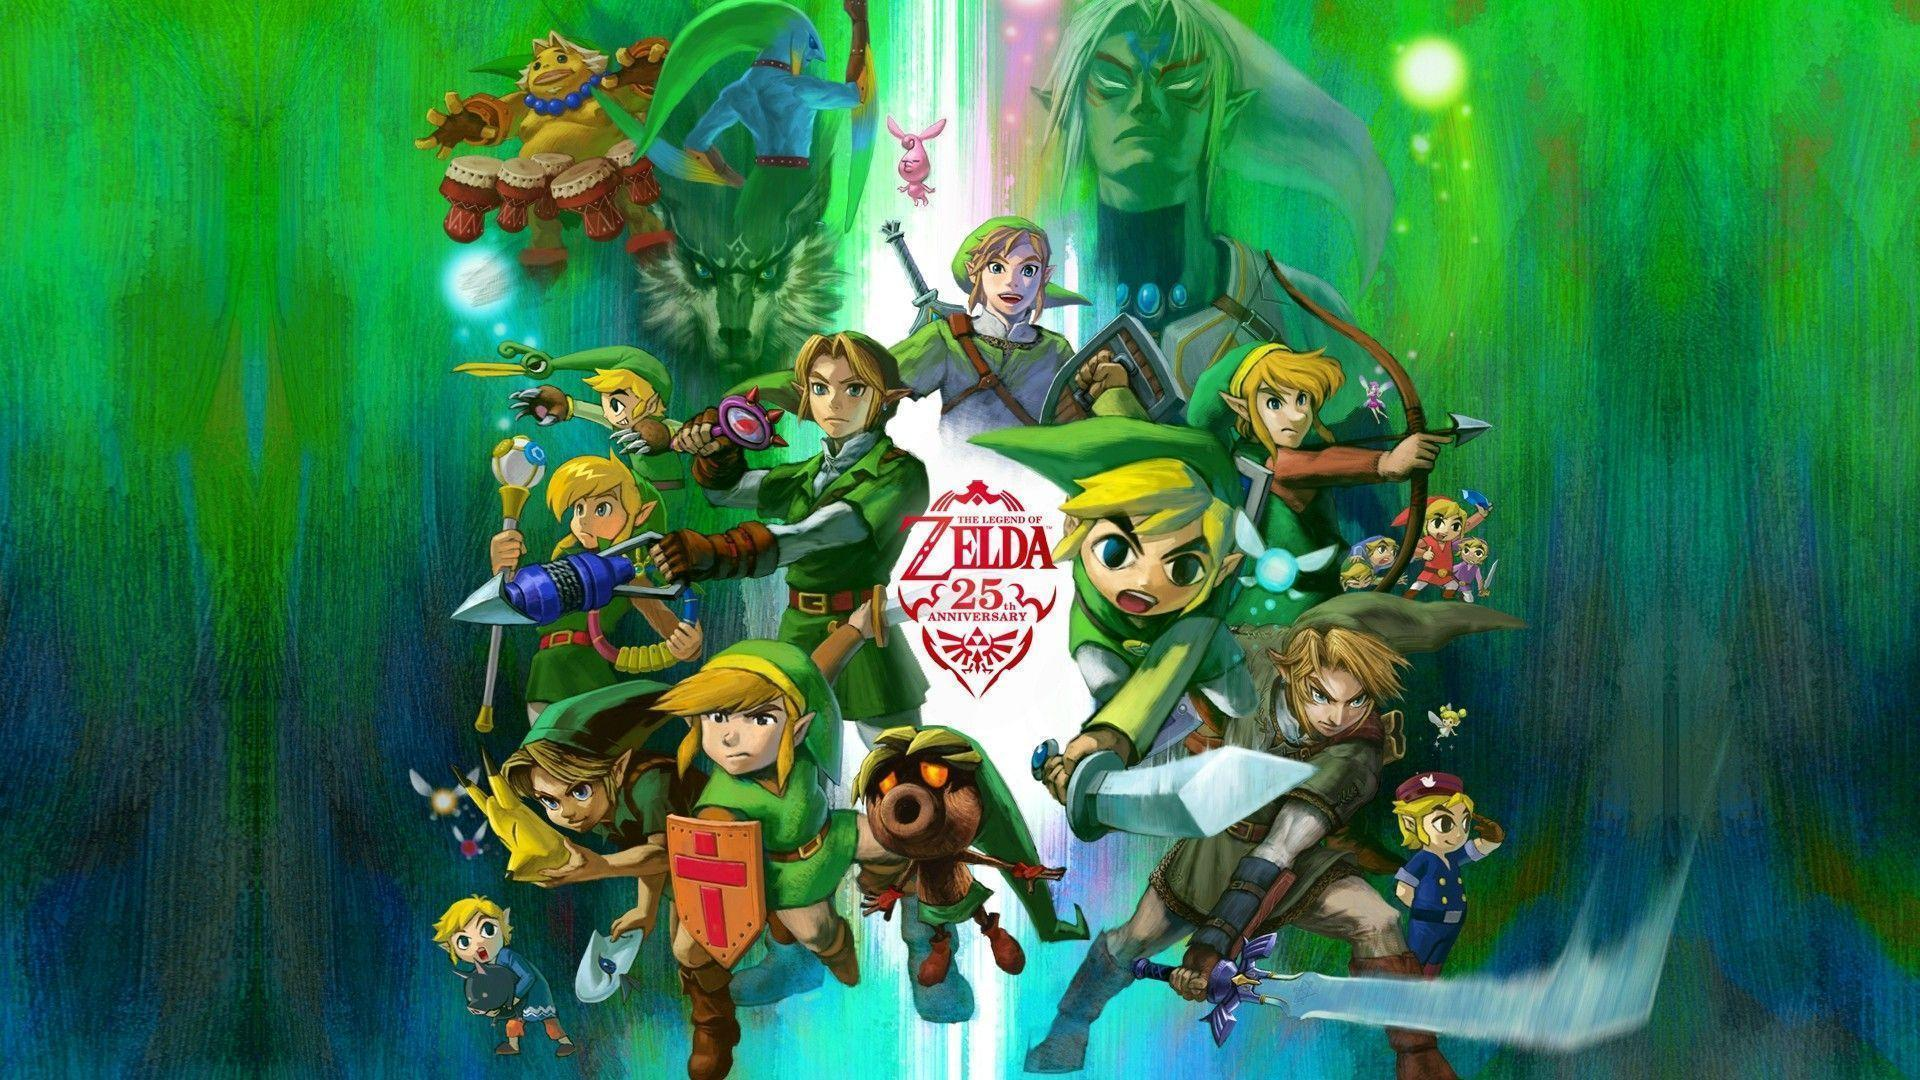 1920x1080 Wallpaper Legend Of Zelda Hd Wallpaper For Desktop